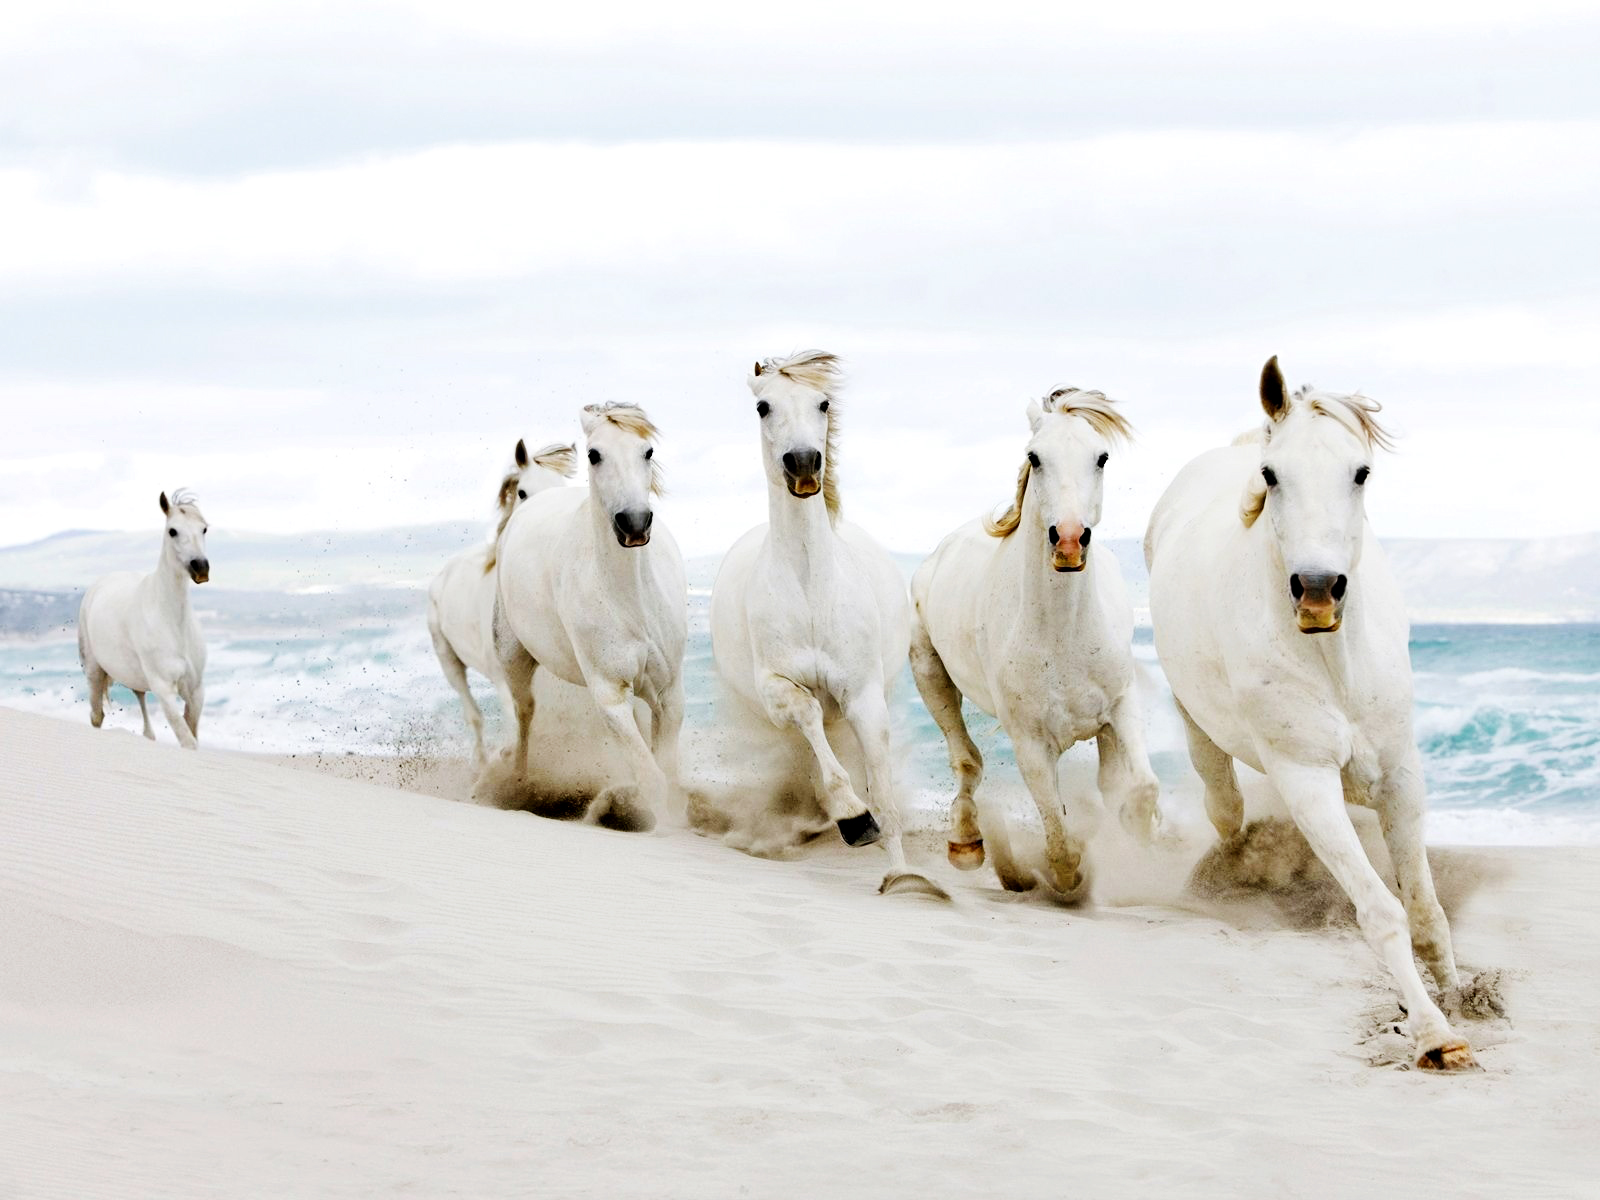 Popular Wallpaper Horse Country - tumblr_static_white_horses_running_on_beach_hd_wallpaper  Graphic_266869.jpg